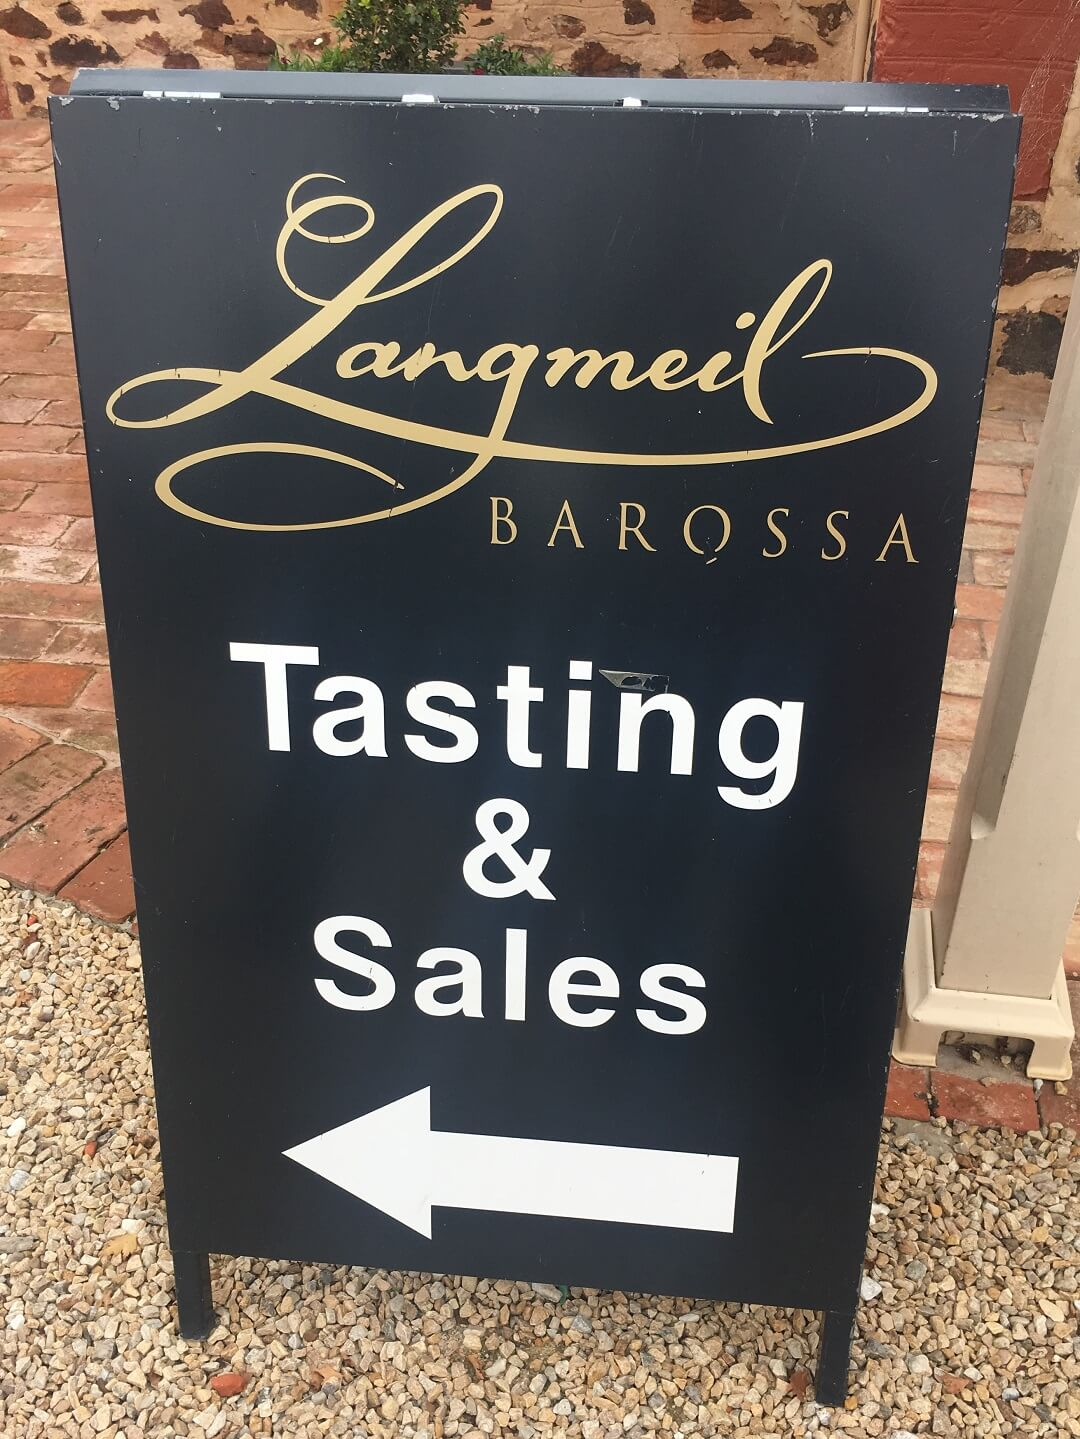 langmeil winery barossa valley australia